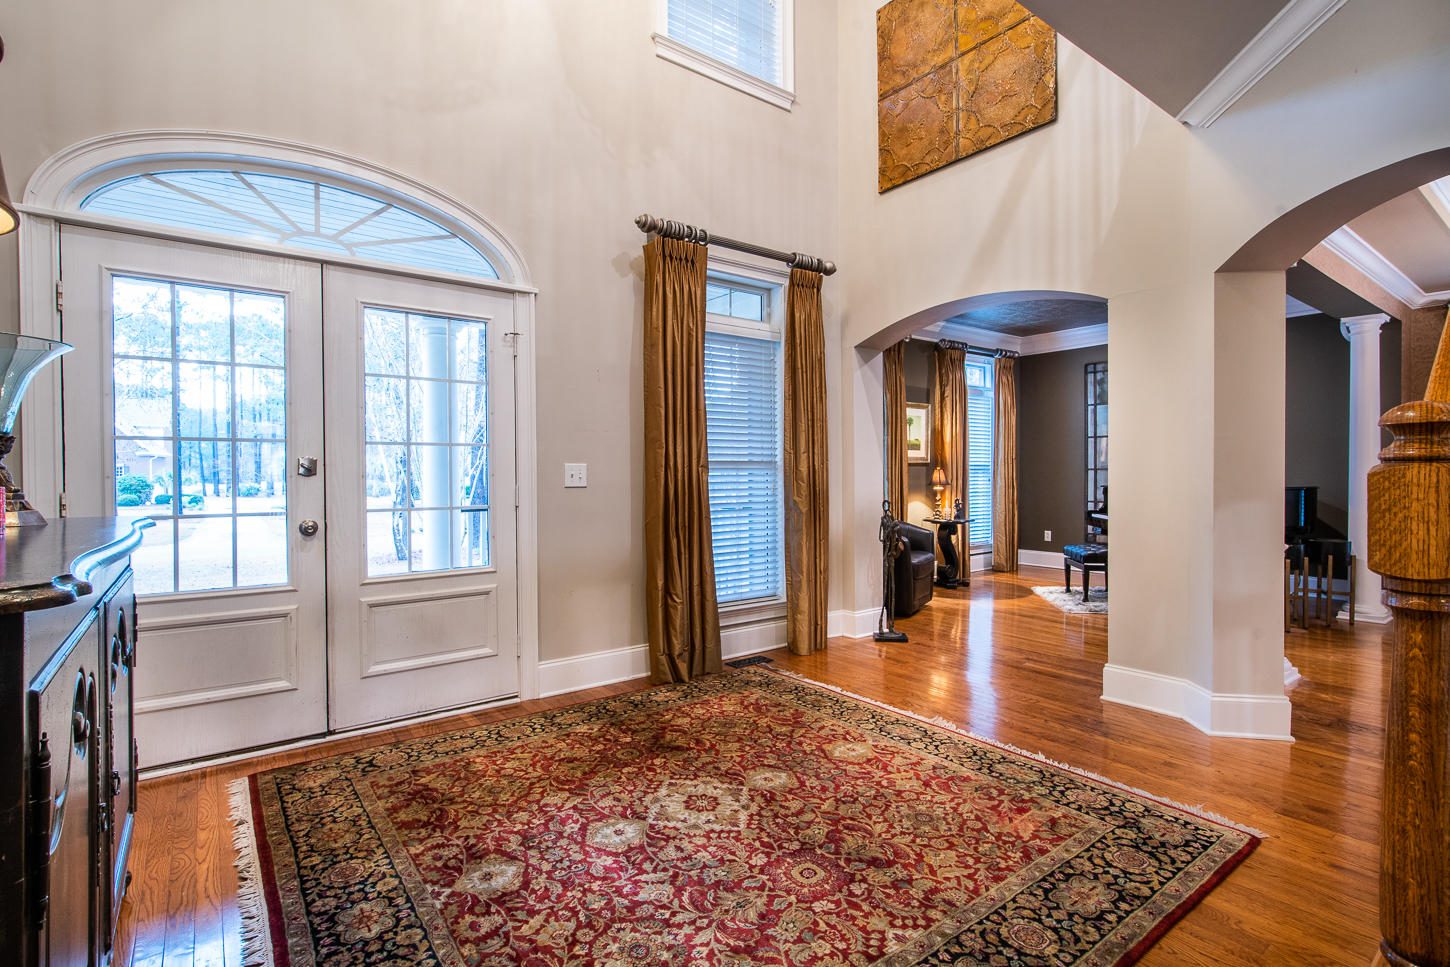 Dunes West Homes For Sale - 1794 Shell Ring, Mount Pleasant, SC - 40